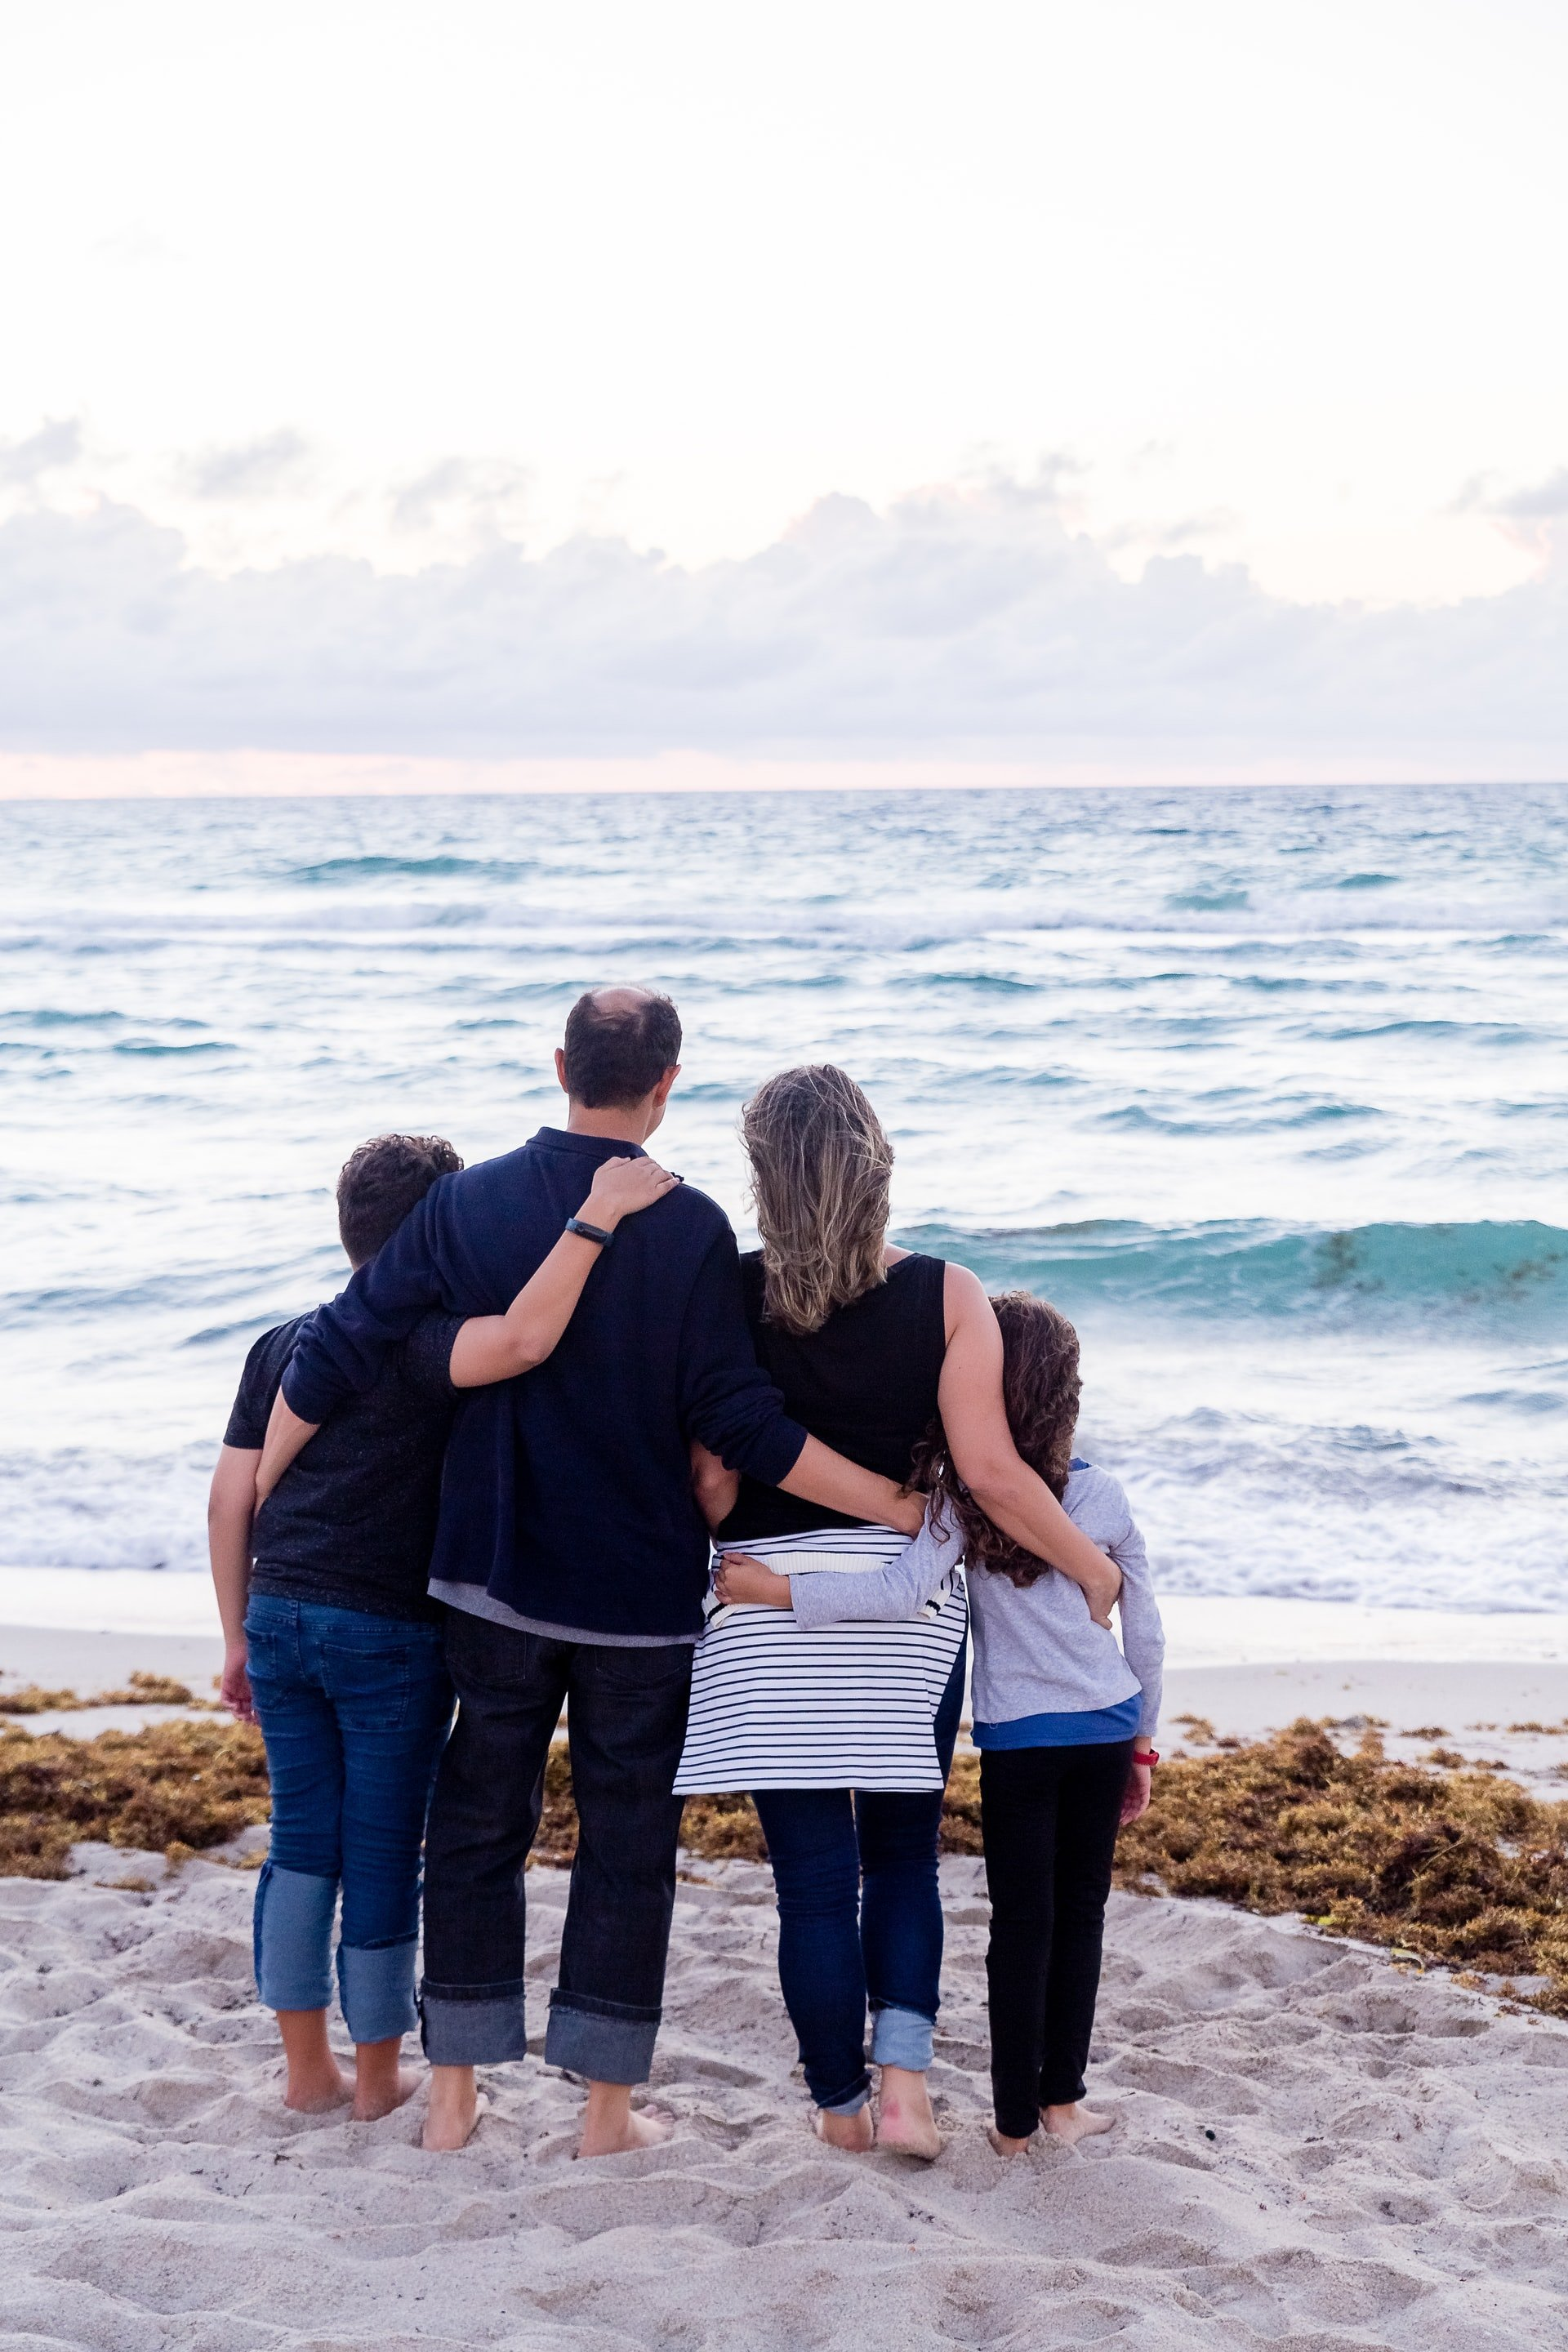 Couple standing with their children at the beach   Source: Unsplash